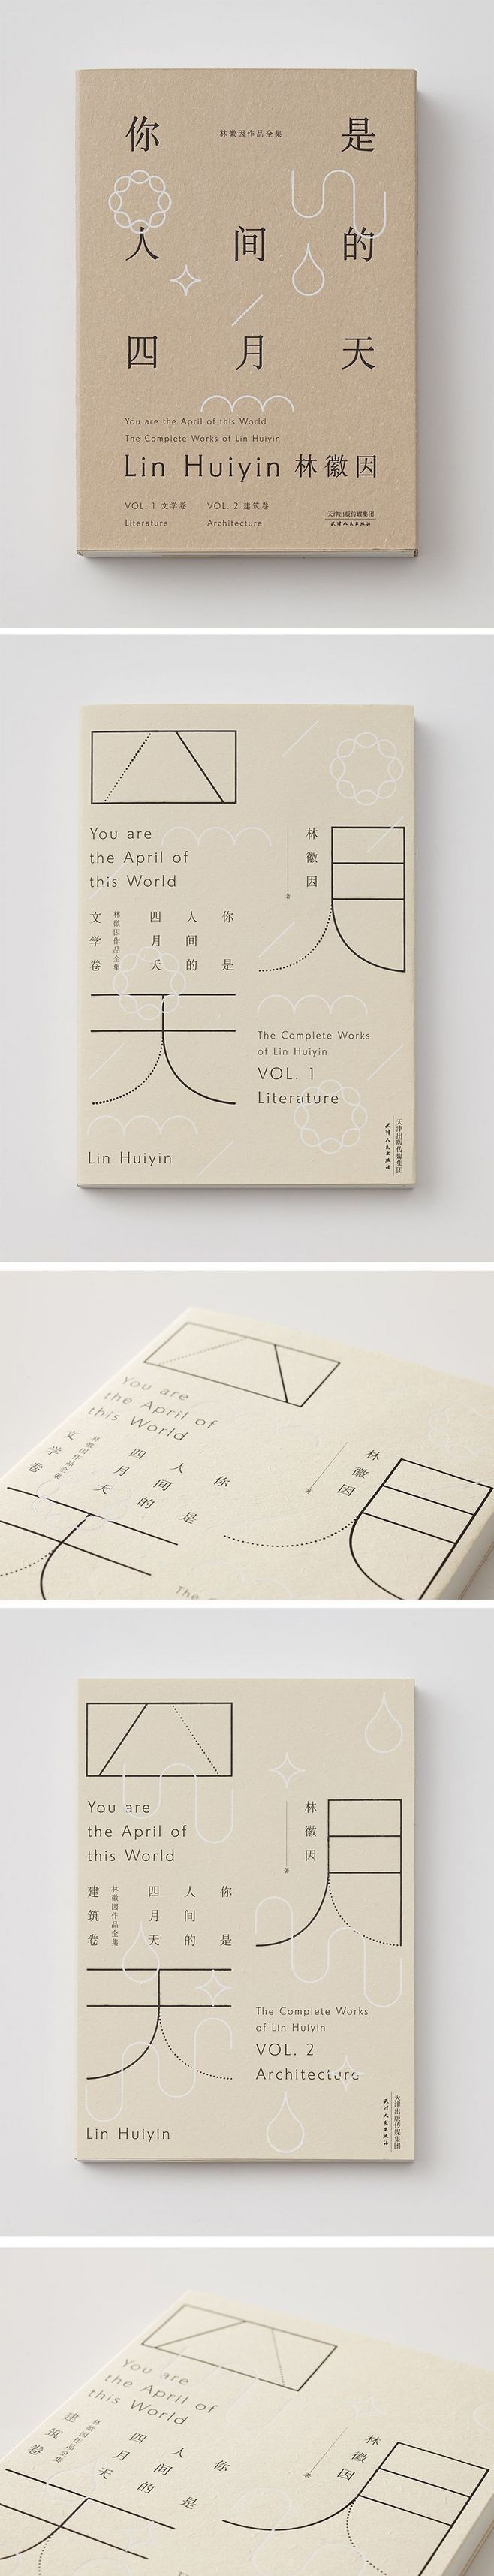 王志弘书籍装帧设计作品 Book Cover Design | Love the subtle textural and color differences of the black & white type/imagery on the kraft paper.